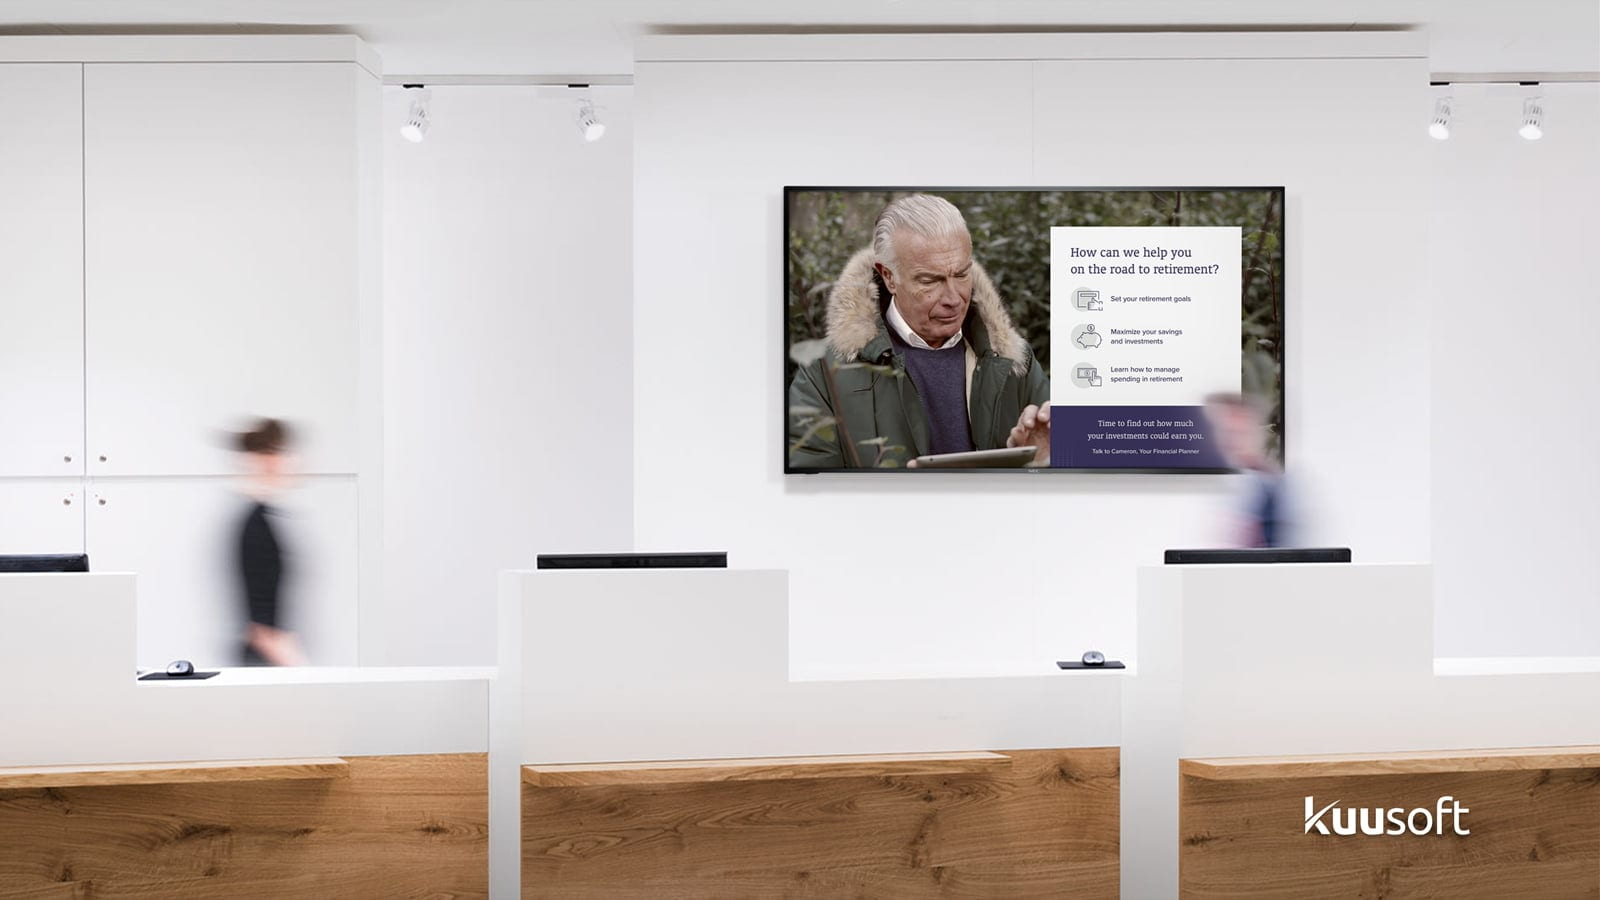 Bank in-branch digital signage with retirement banking content